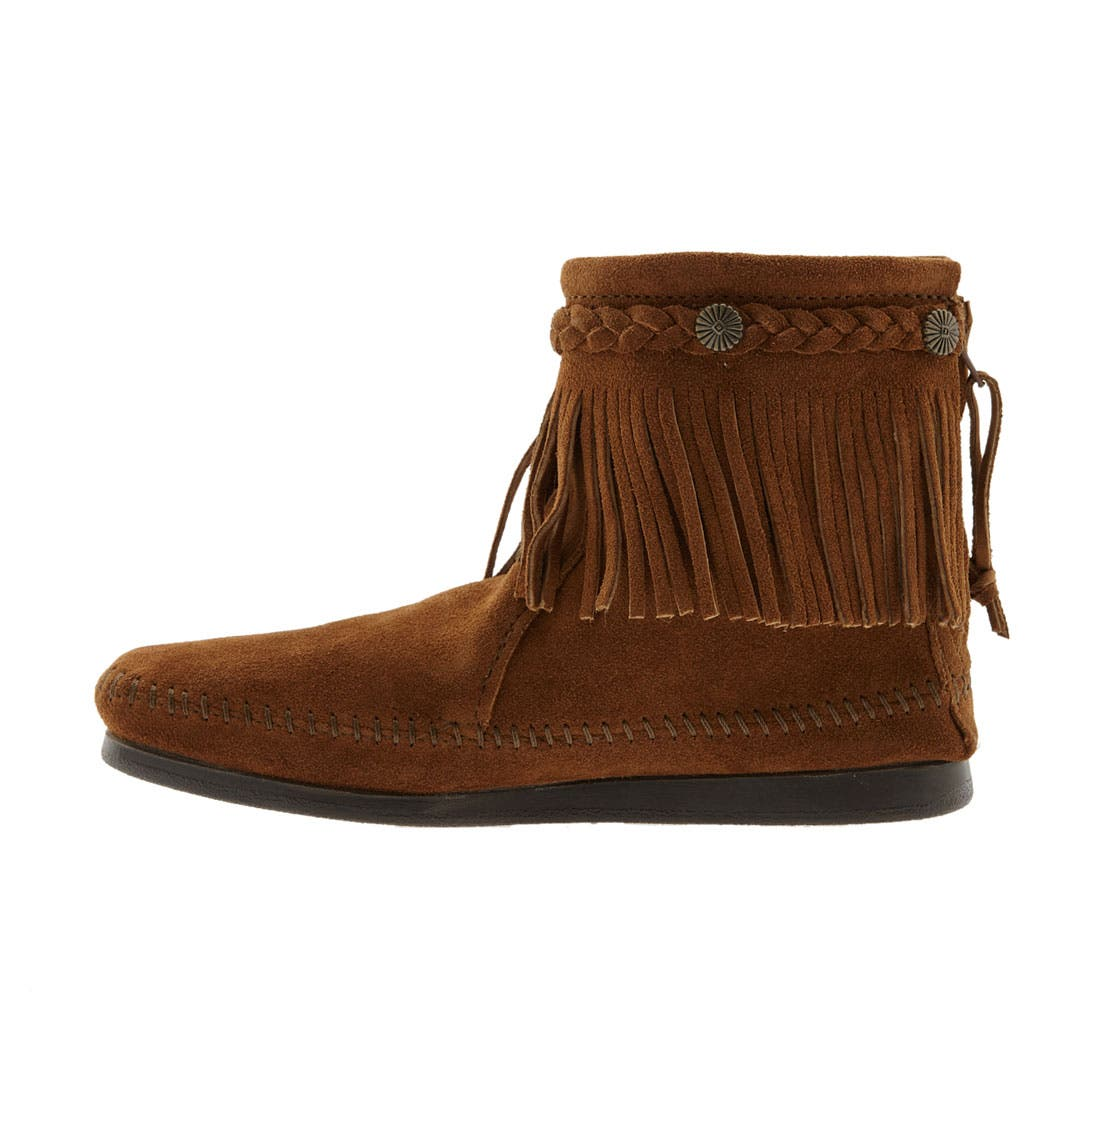 Fringed Moccasin Bootie,                             Alternate thumbnail 5, color,                             BROWN